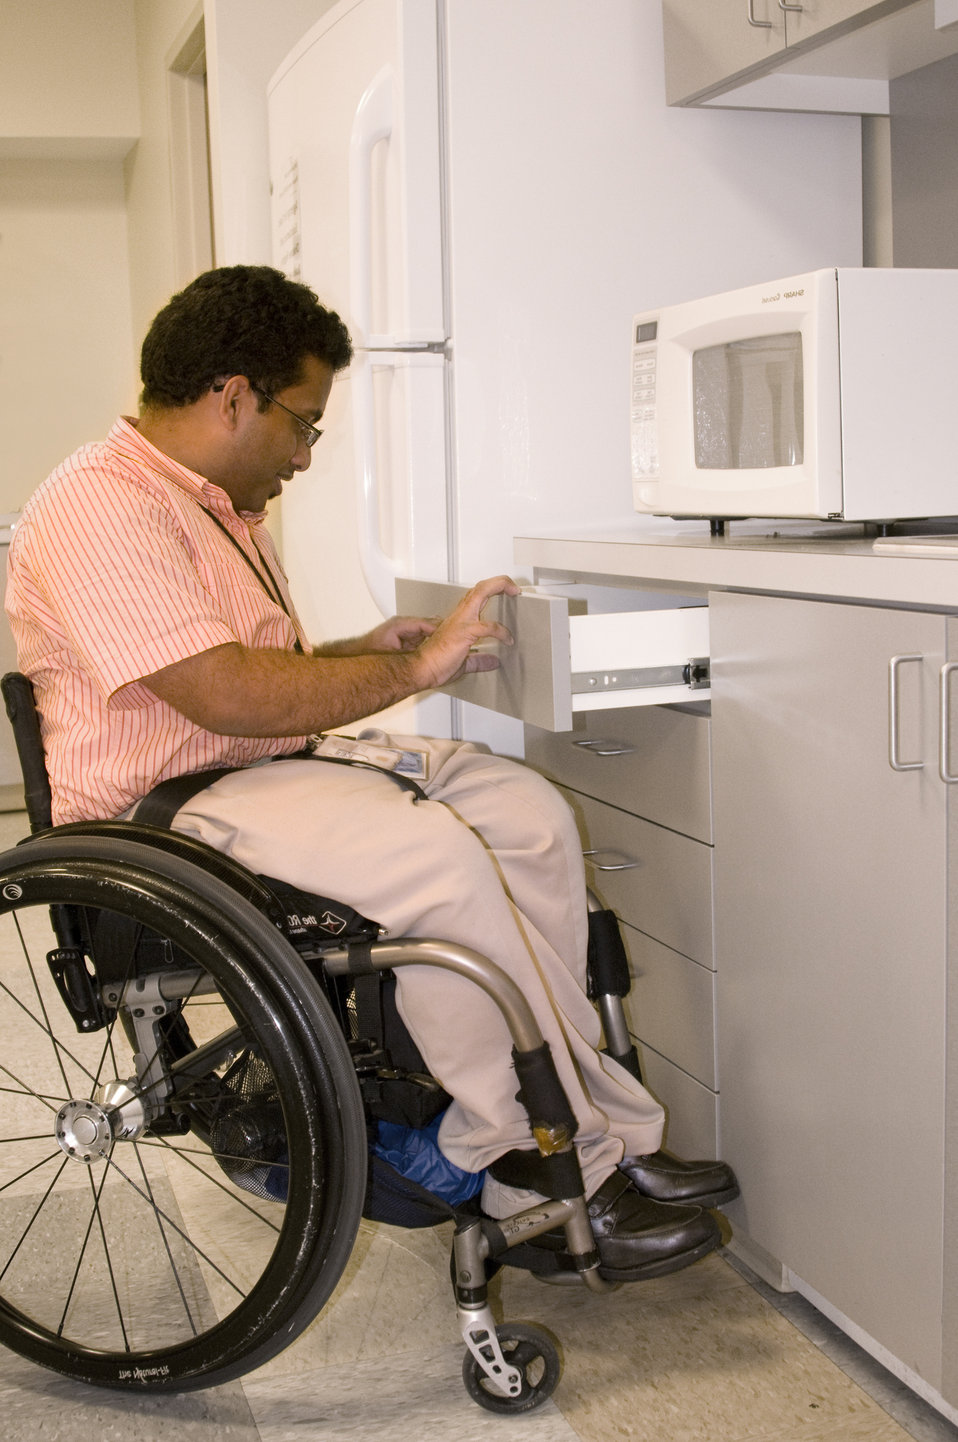 This man who was seated in his wheelchair, was photographed in this kitchen setting while opening a cabinet drawer. Note that the height of